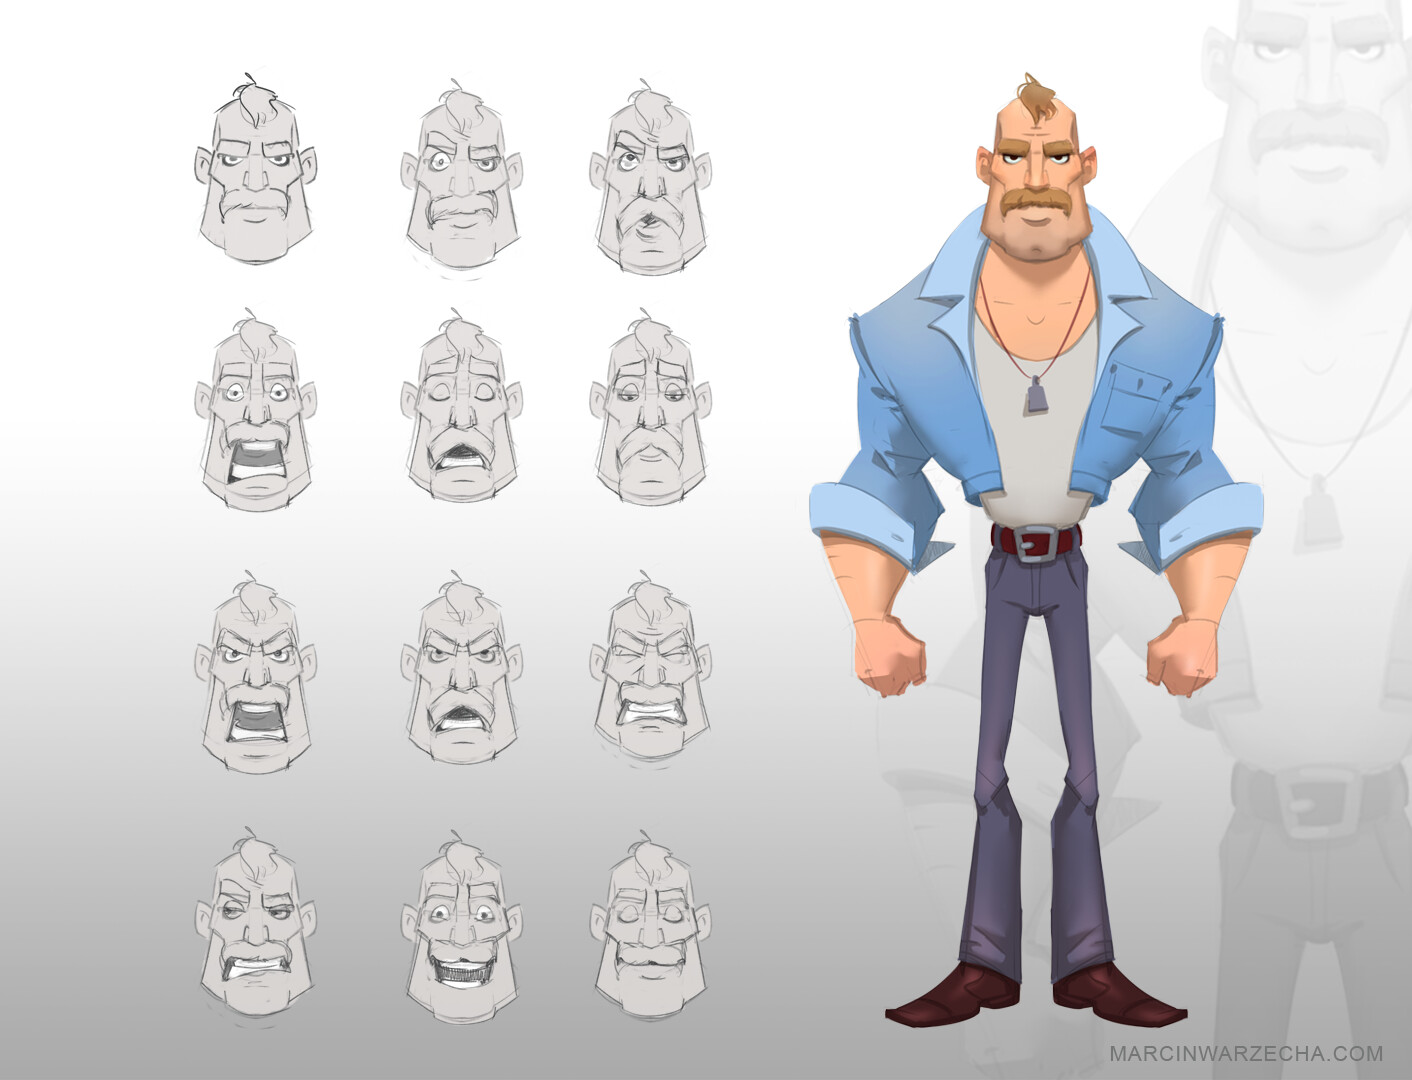 Hank - Stylized character design